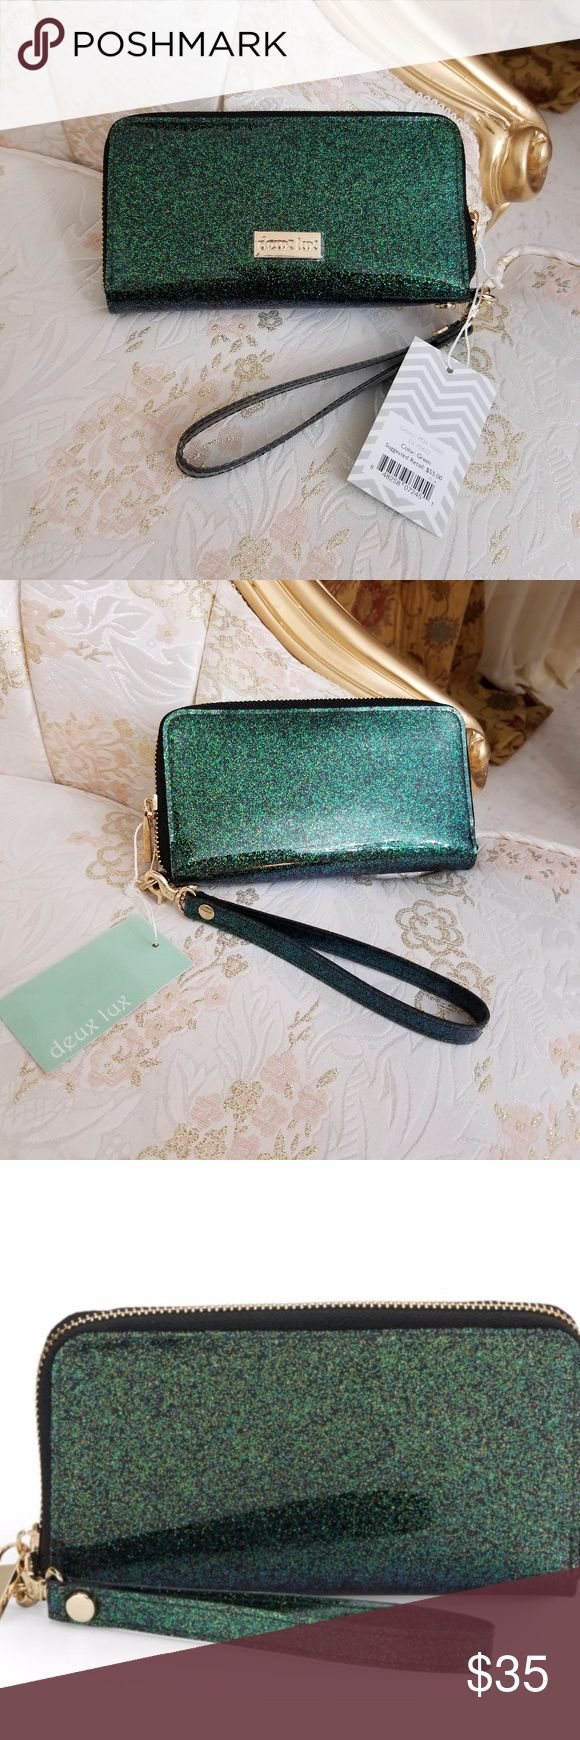 """Deux Lux Green Glossy Glitter Wallet/Wristlet New Without Tags 100% Authentic, Guaranteed!! Deux Lux Green Glossy Glitter Zip-Around Women's Wallet With Removable wristlet strap, 5"""" drop. Polka dot lining, six credit card slots, two inside open pockets, top zip closure. Size: 7""""W x 4.5""""H x 0.75""""D Deux Lux Bags Wallets"""